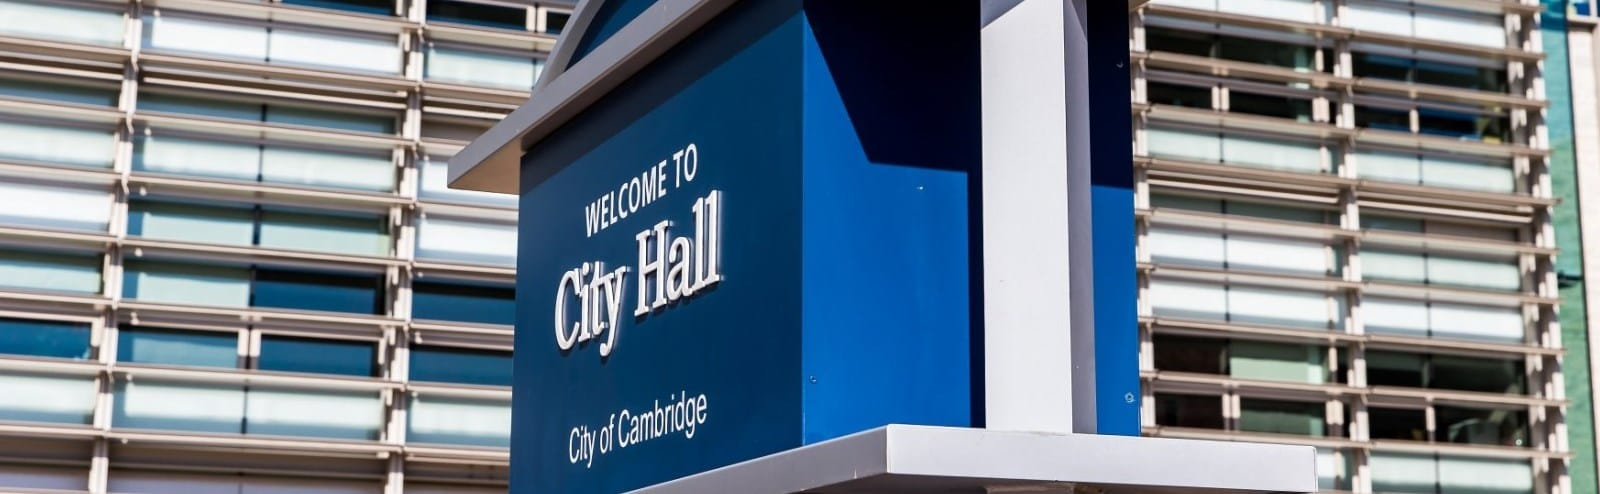 Welcome sign at city hall